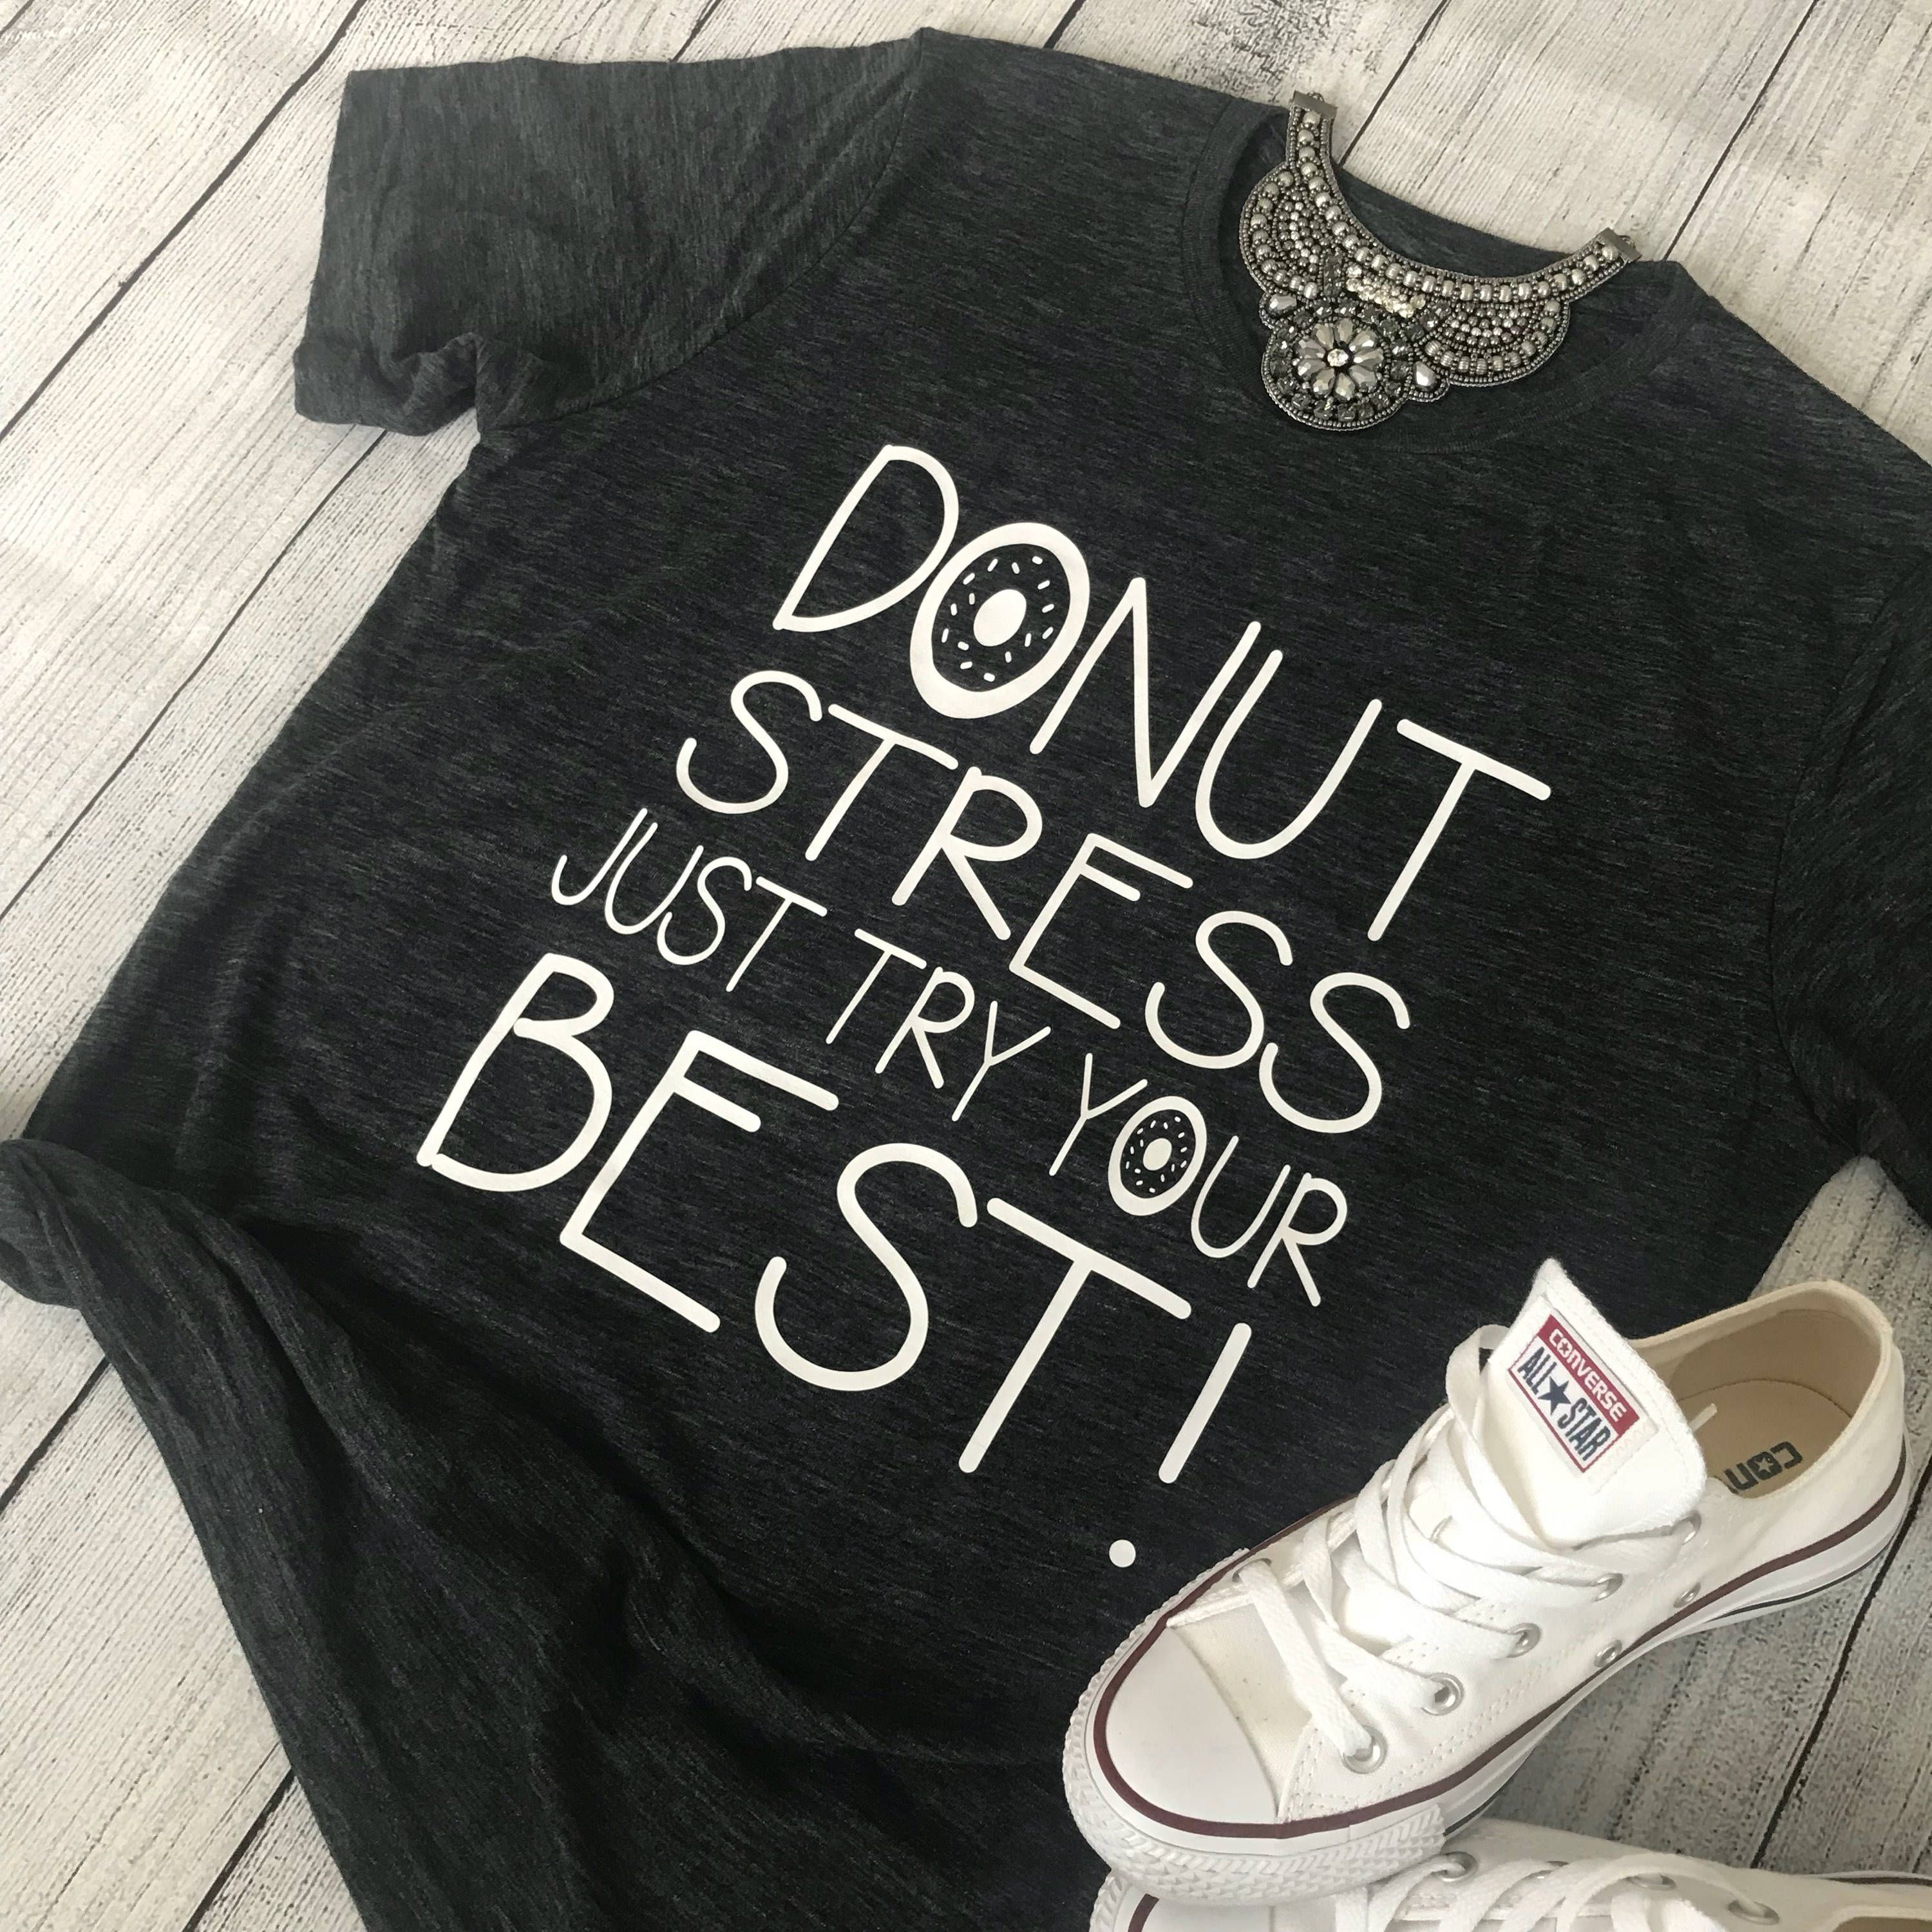 524330380 DONUT Stress Just Try Your BEST! Teacher Tee Teacher Shirt Testing Shirt  School Spirit Shirt Shirt for Standardized Testing Pass the Test